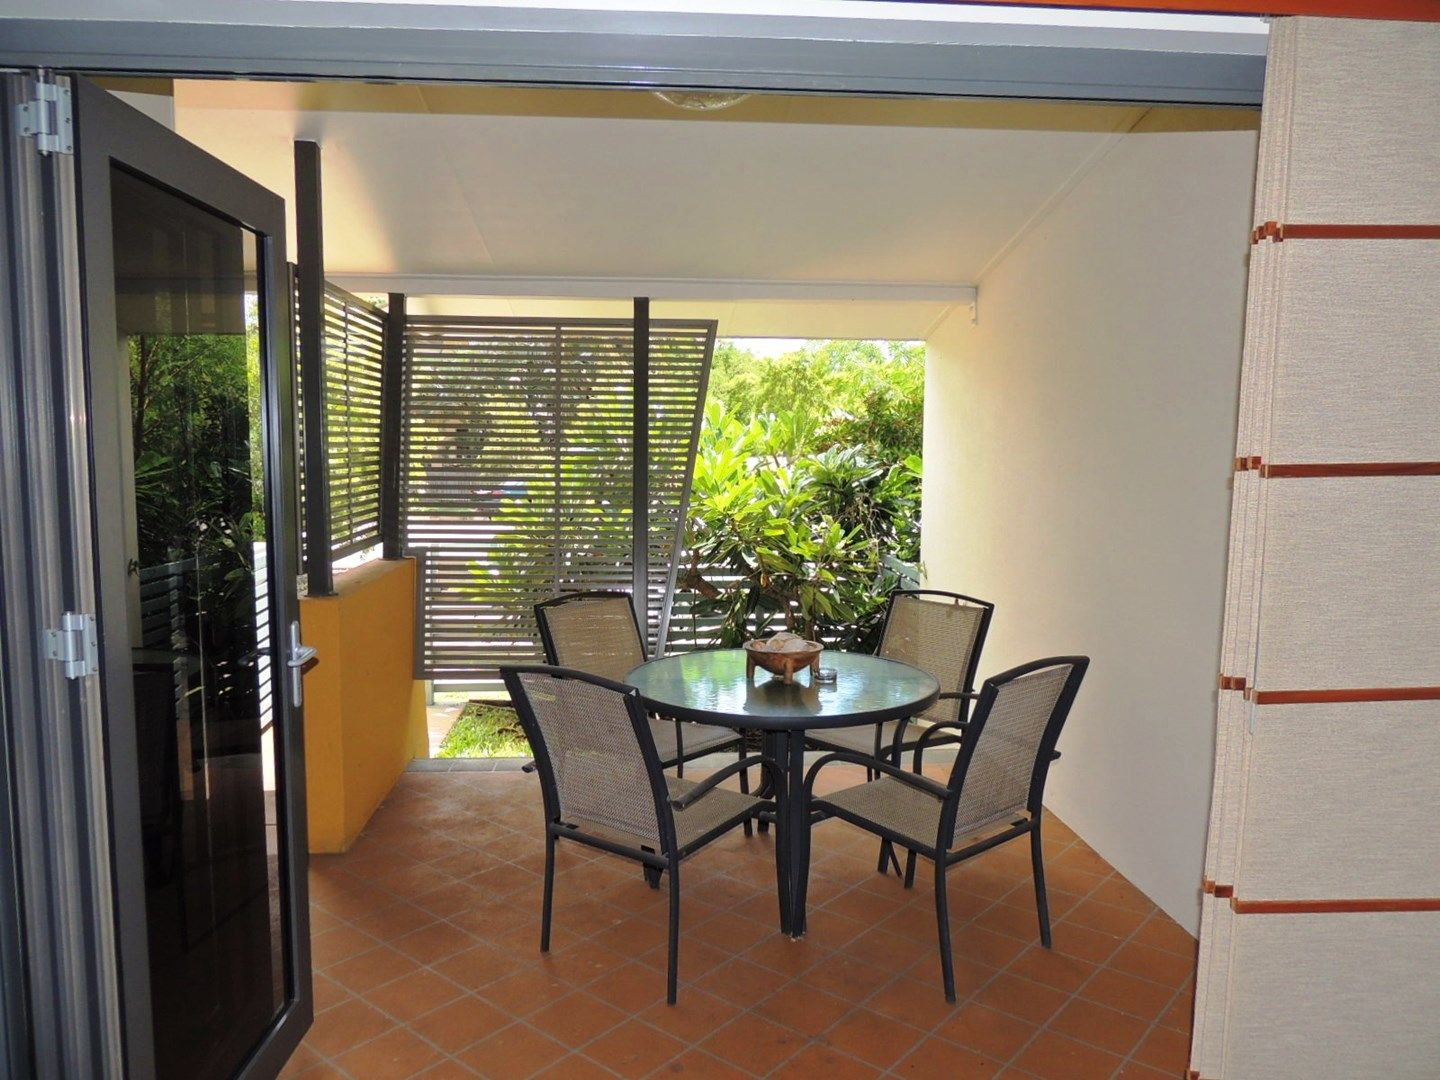 15/66 Davidson Street, South Townsville QLD 4810, Image 0